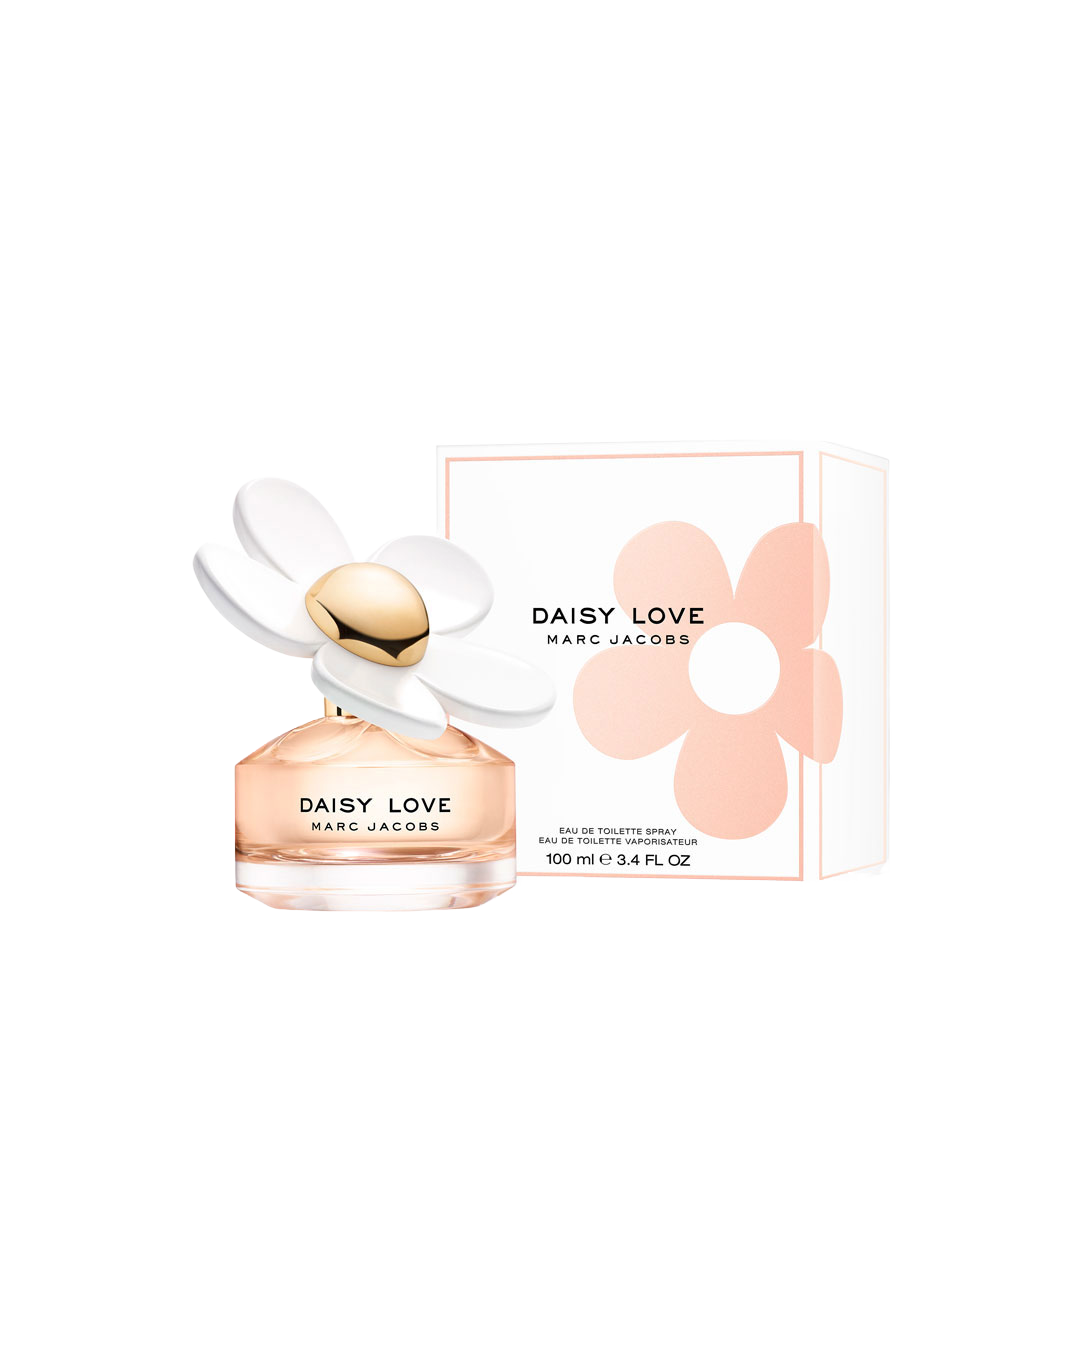 Marc Jacobs Daisy Edt 100ml Fredrik & Louisa